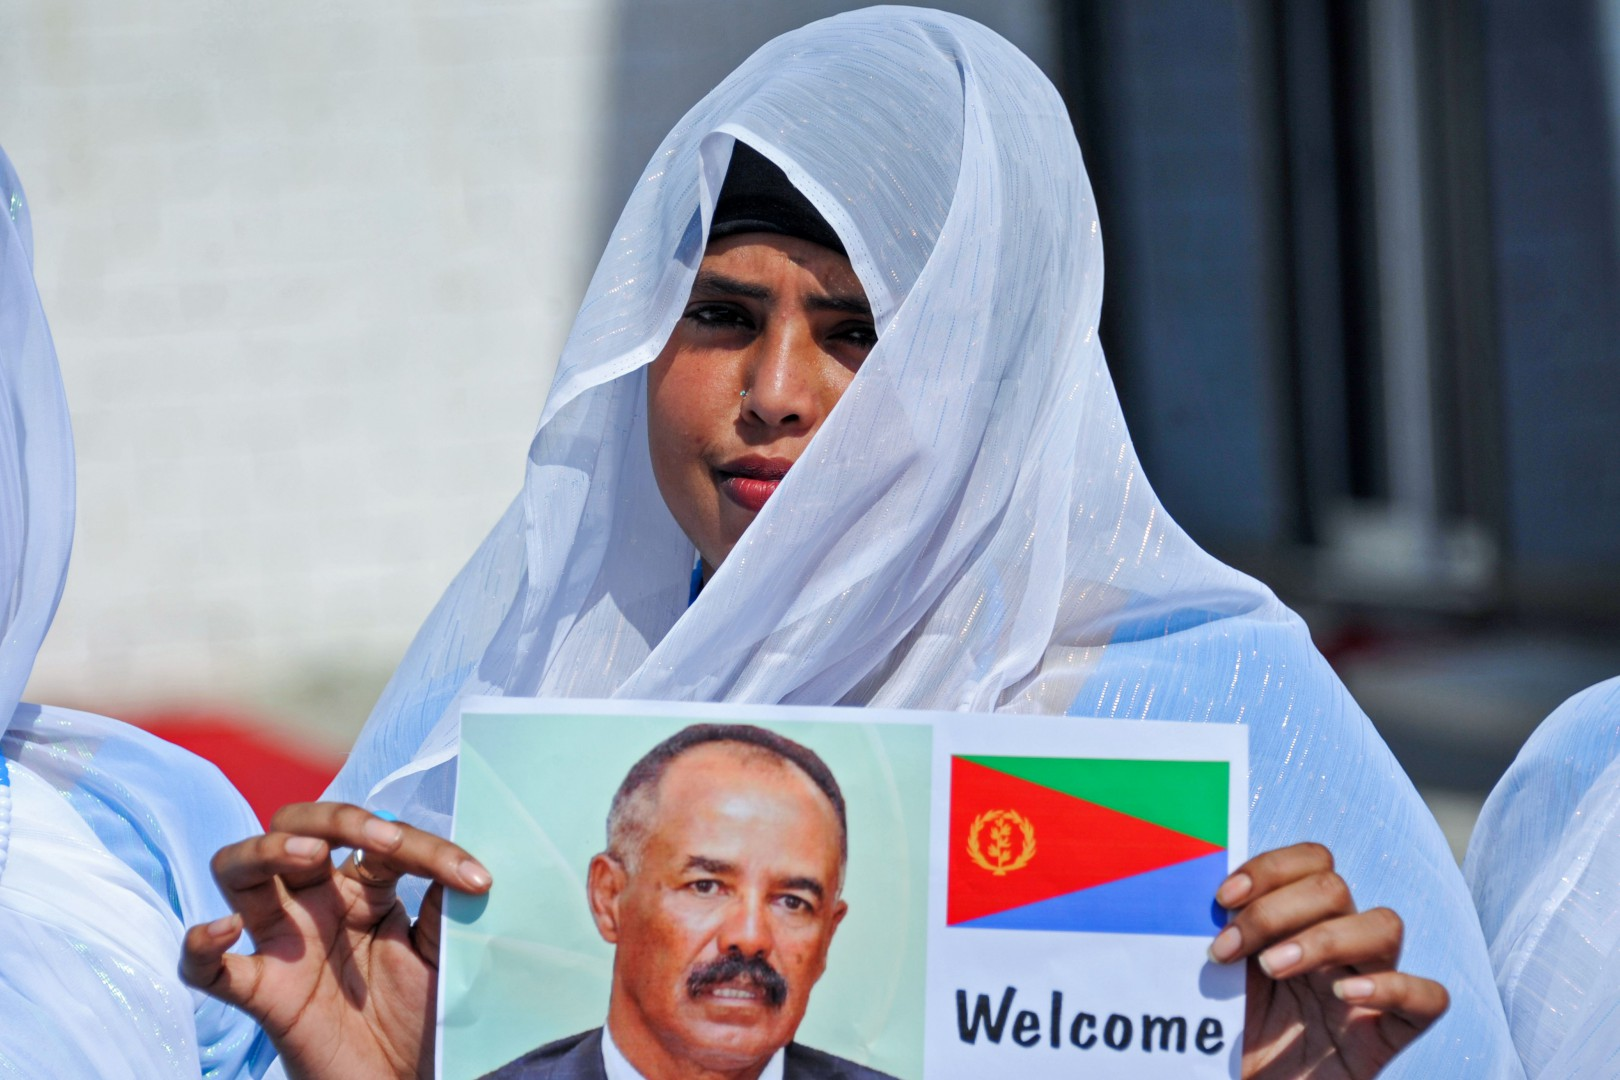 A Somali woman waits for the arrival of Eritrea's President as she holds a picture of him at Aden Abdulle international airport in Mogadishu, on December 13, 2018 ahead of his meeting with his Somalian counterpart. (Photo by Mohamed ABDIWAHAB / AFP)